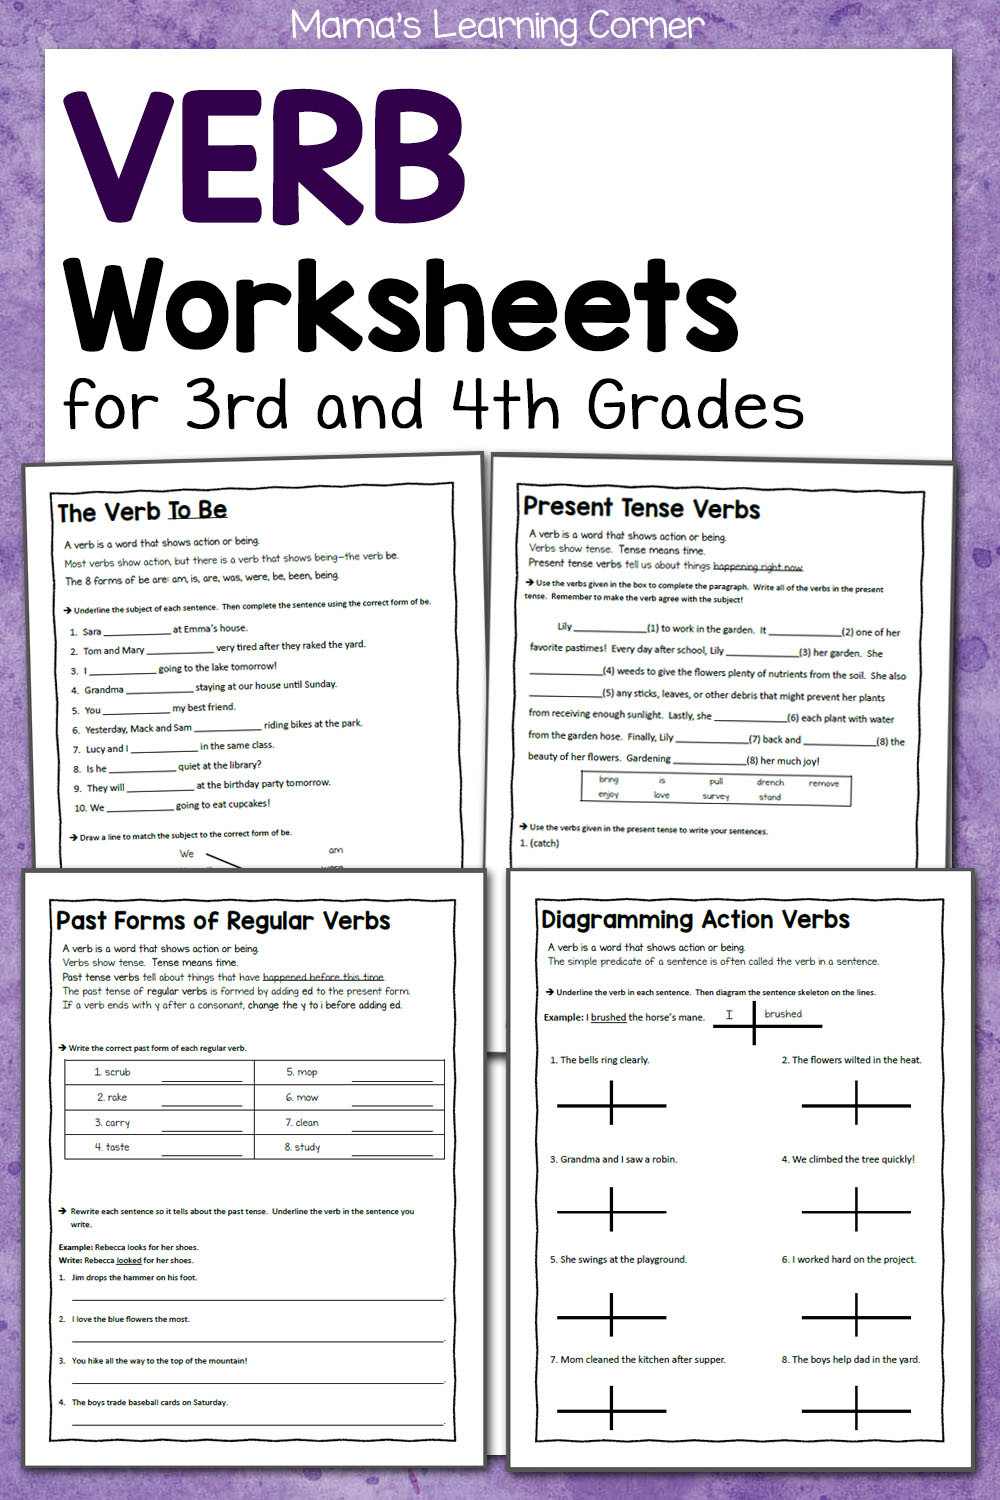 Verb Tense Worksheets 4th Grade Verb Worksheets for 3rd and 4th Grades Mamas Learning Corner